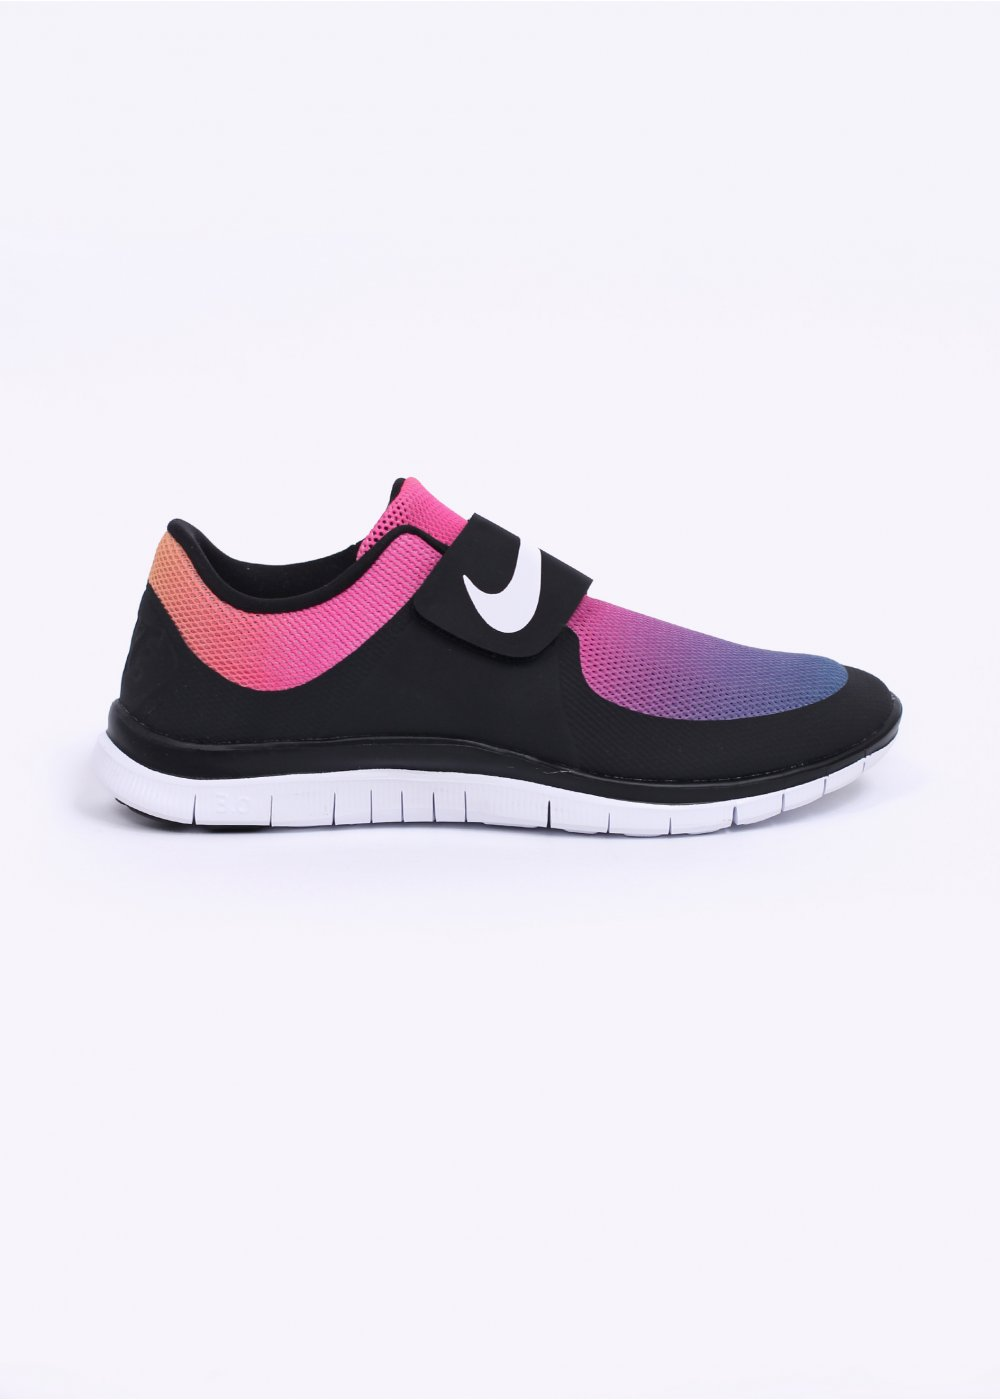 b95d2c667d8a Nike Free Socfly SD Trainers - Black   White   Pink Flash